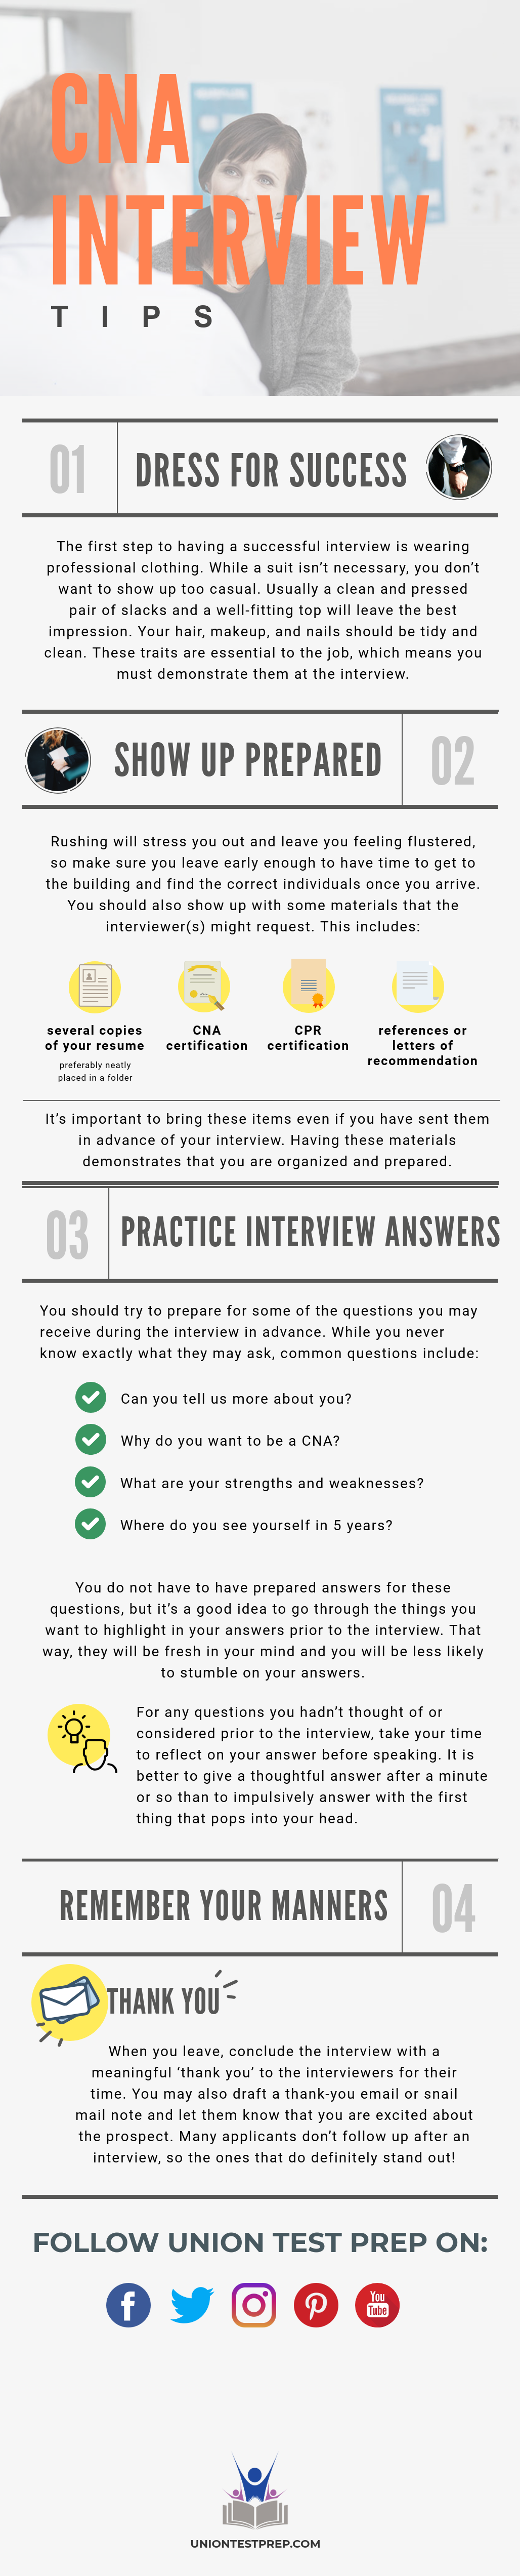 CNA Interview Tips